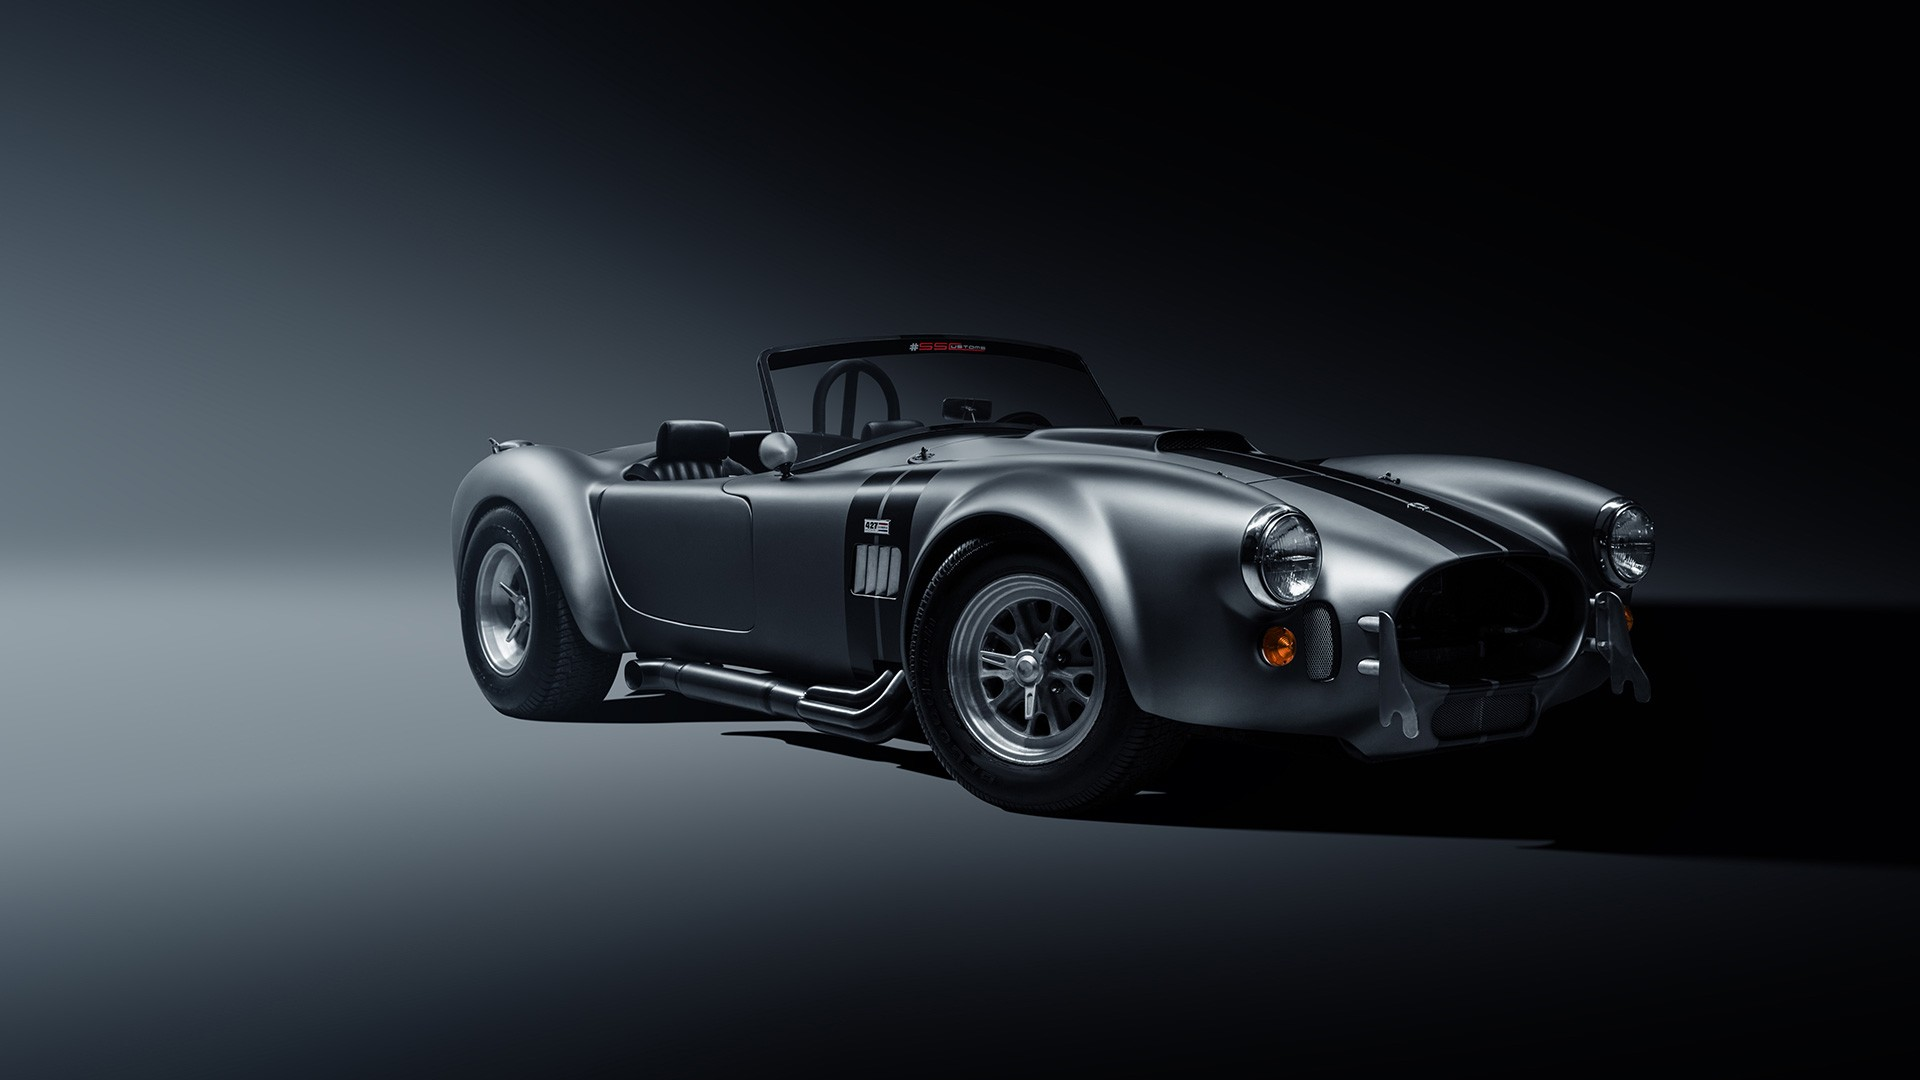 Shelby Cobra SS Customs Wallpaper